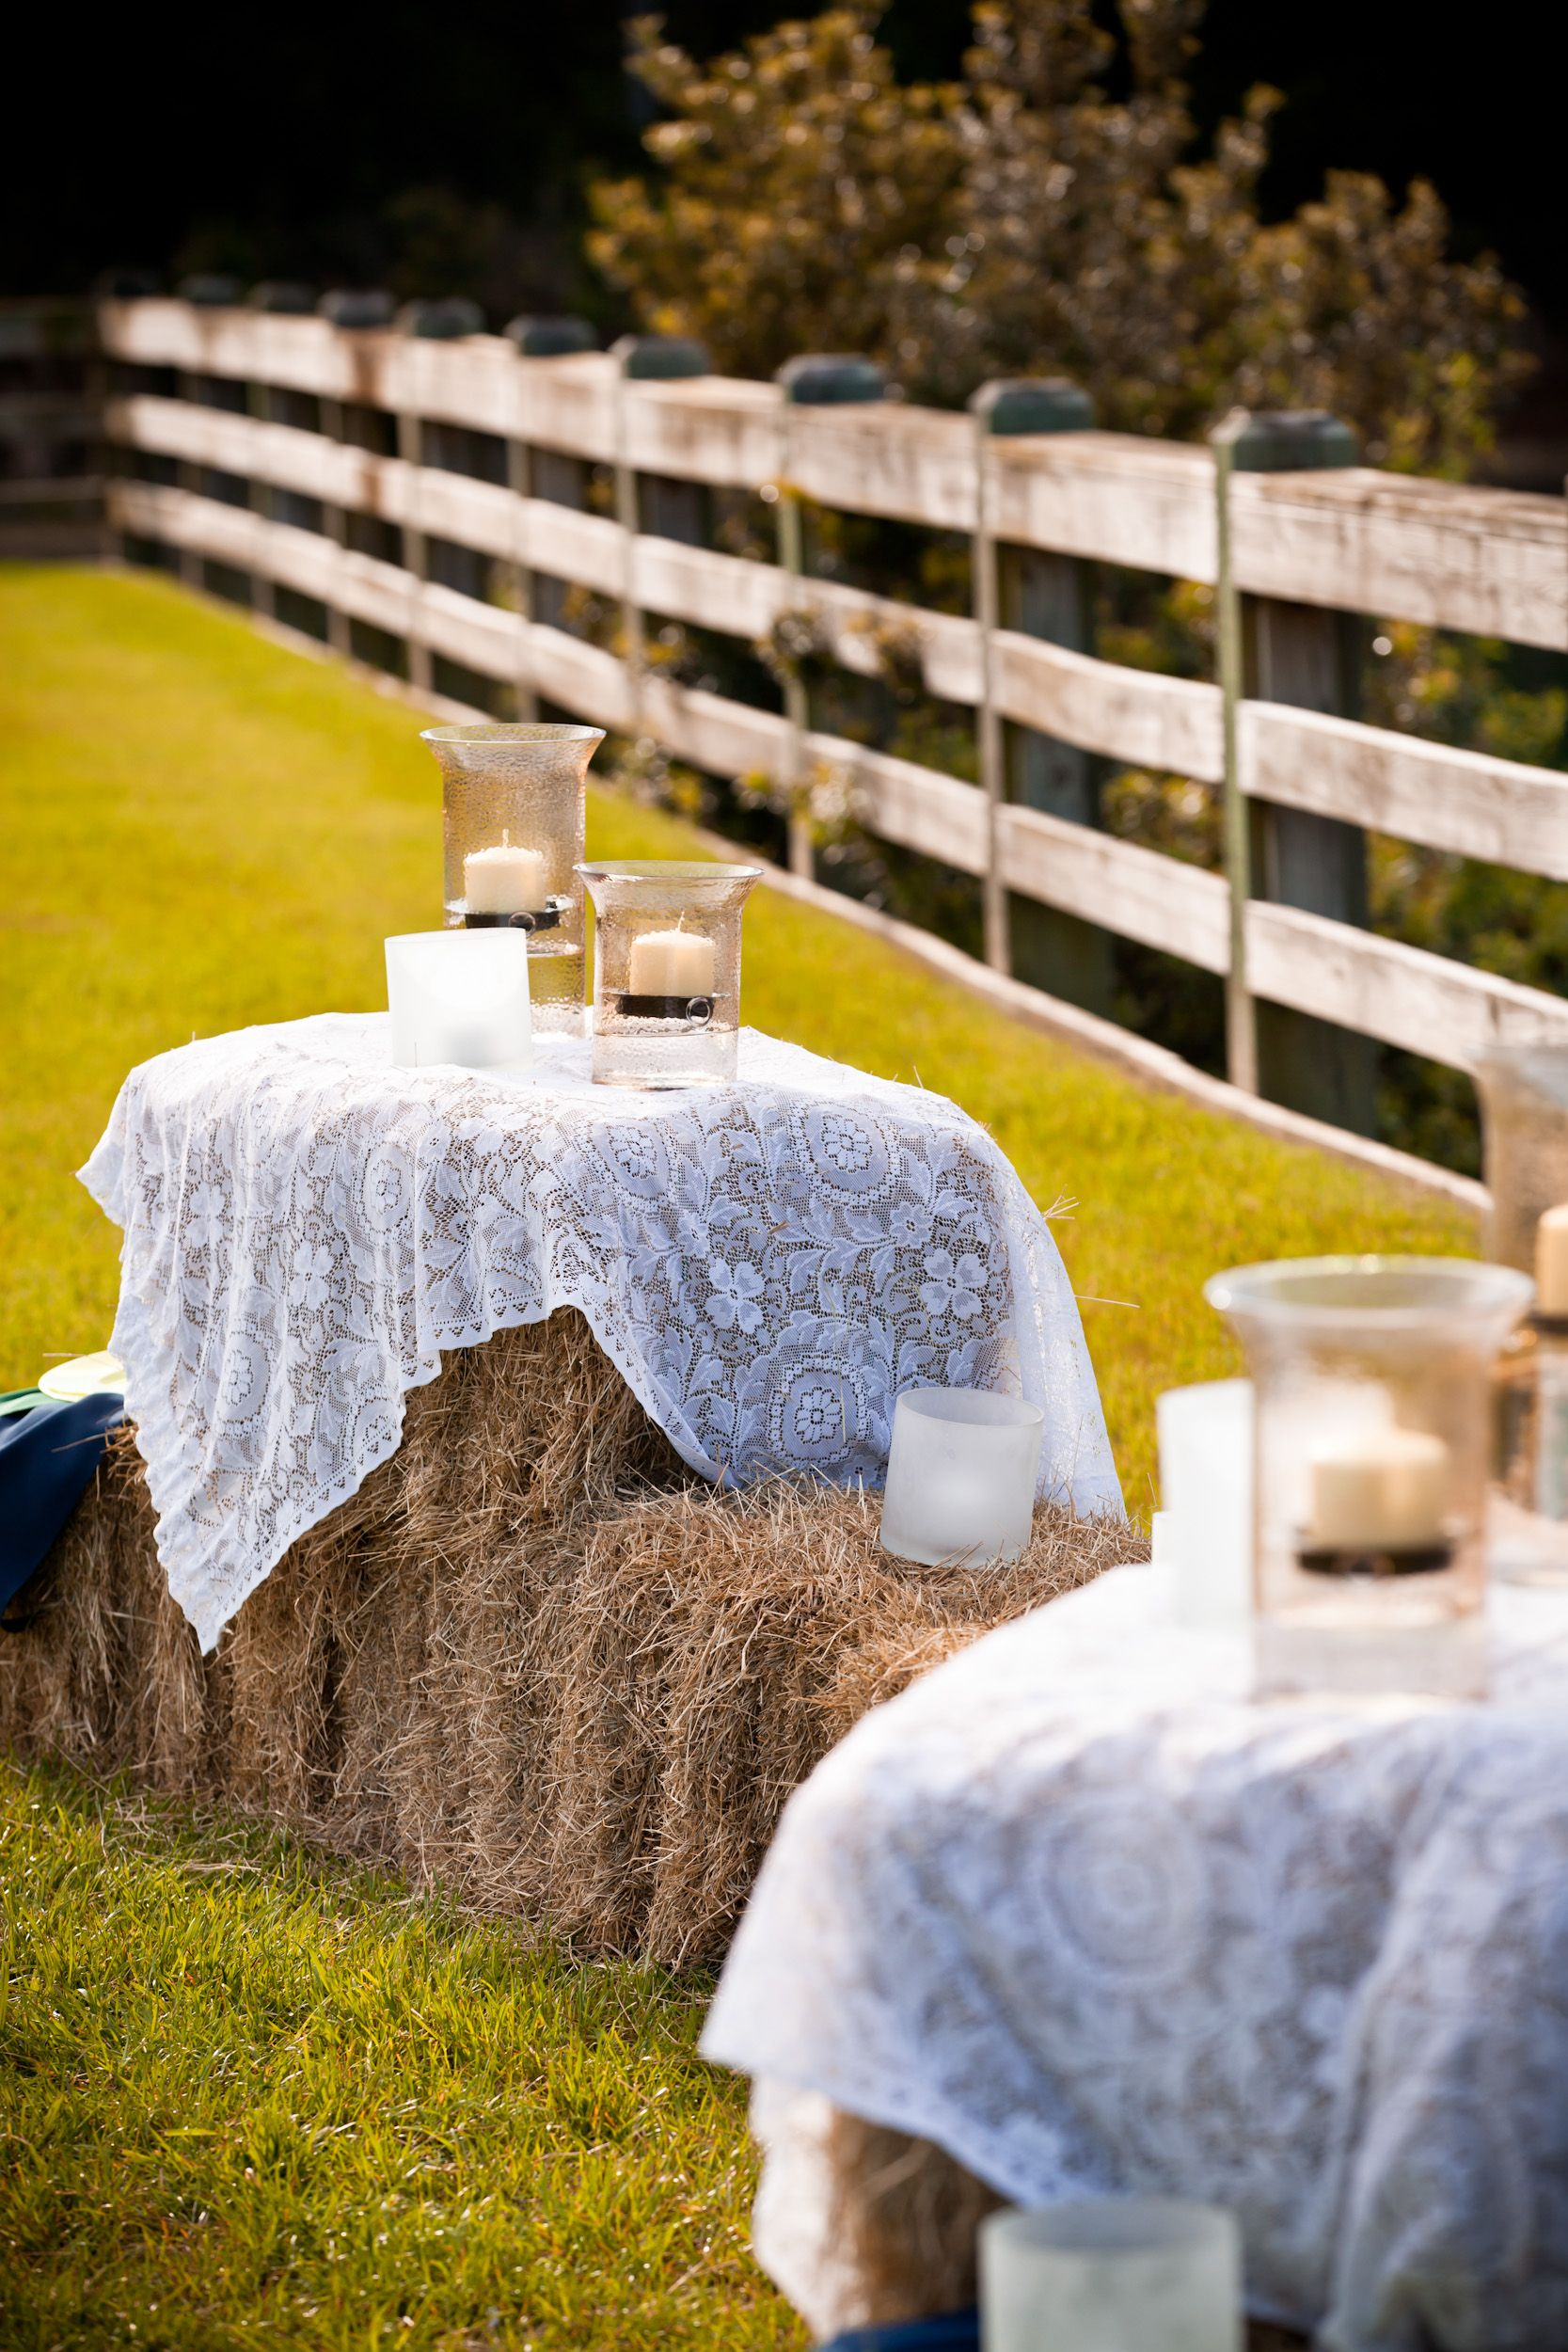 Wedding Decorations Re Such A Cute Idea Drape Lace Over Haybales If Youre Having An